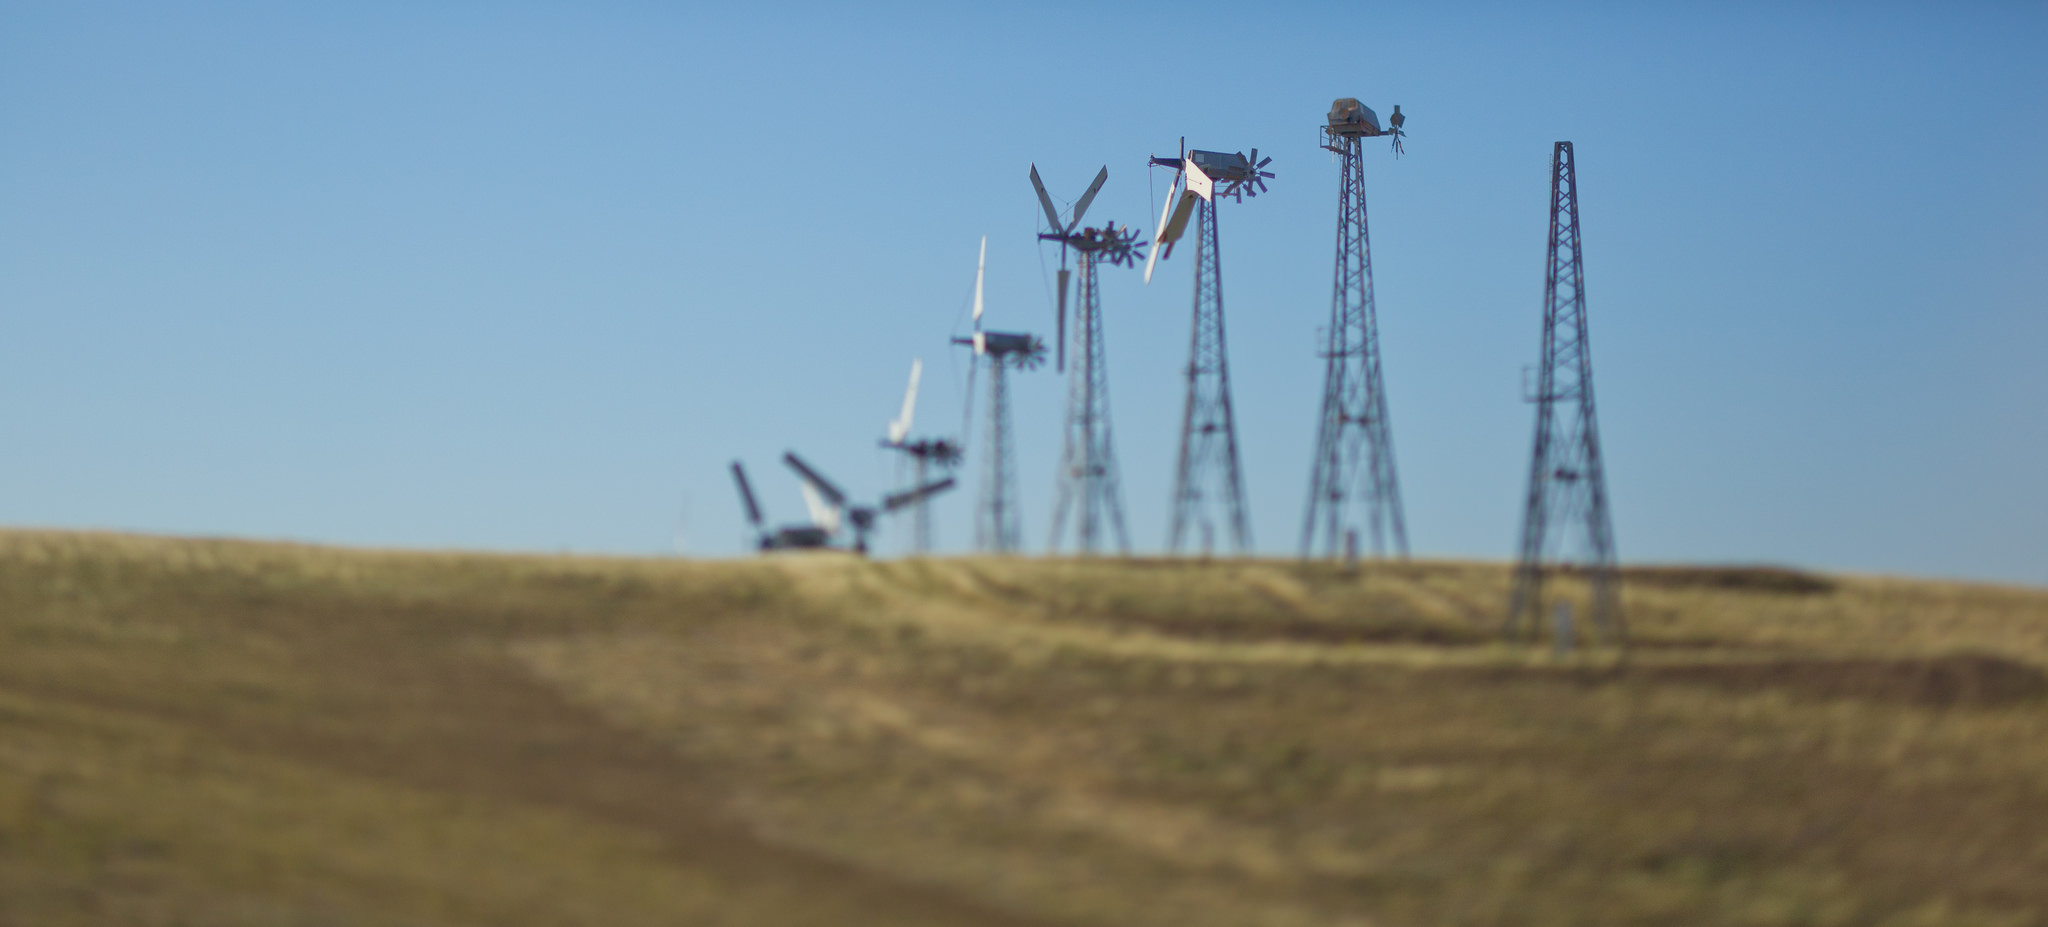 Windmills at Altamont Pass